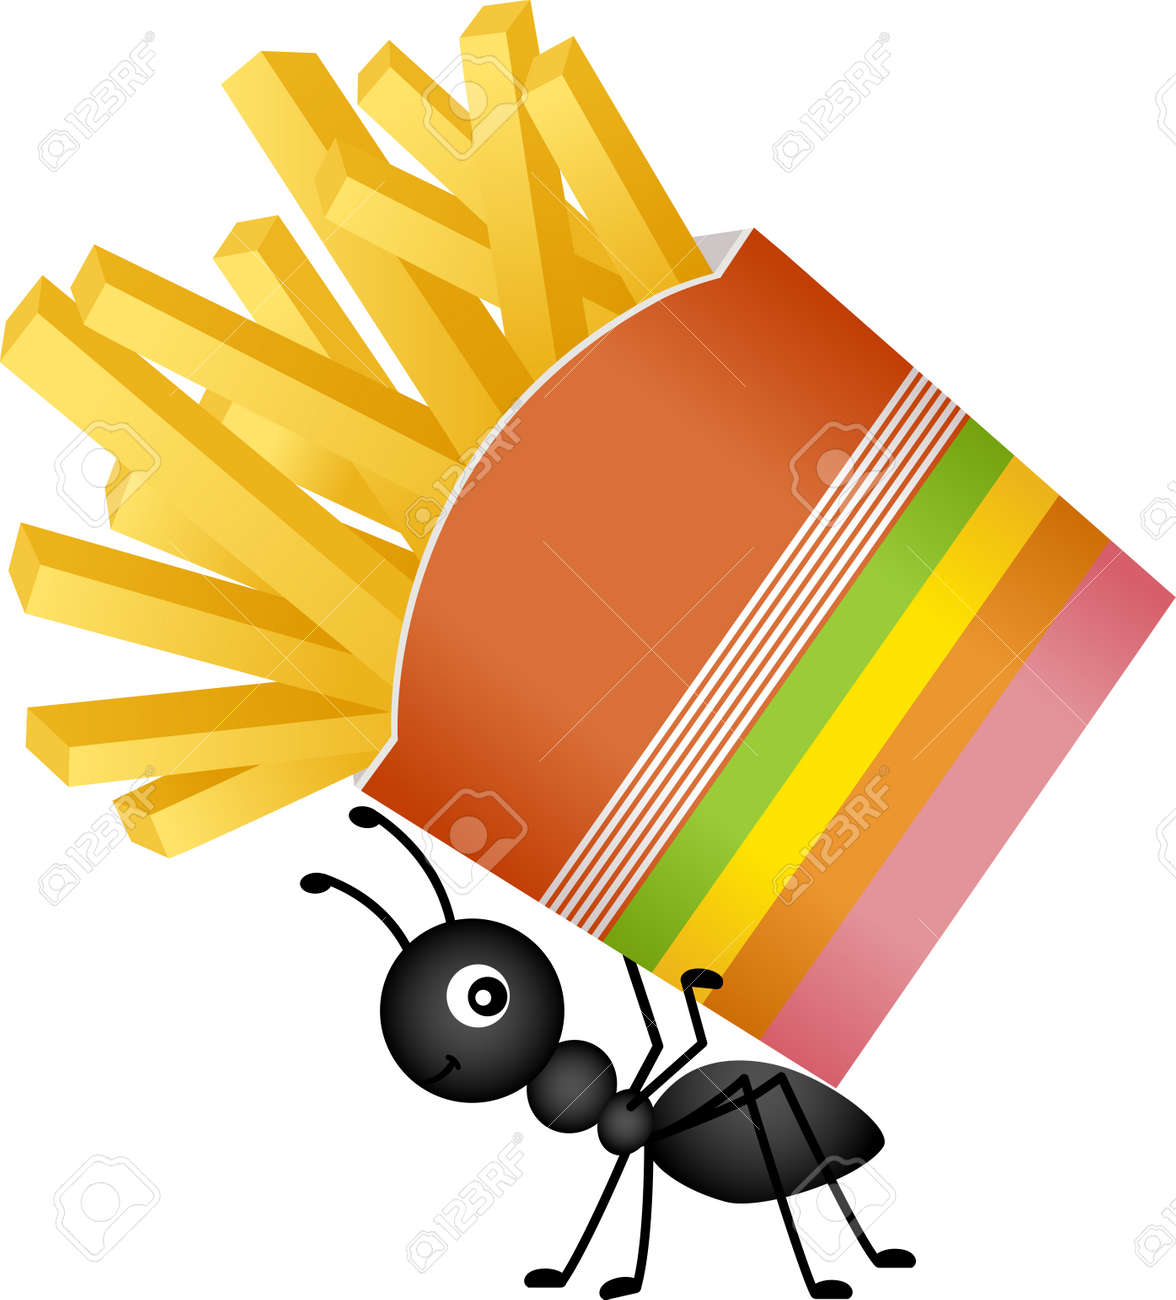 67 picnic ant stock vector illustration and royalty free picnic